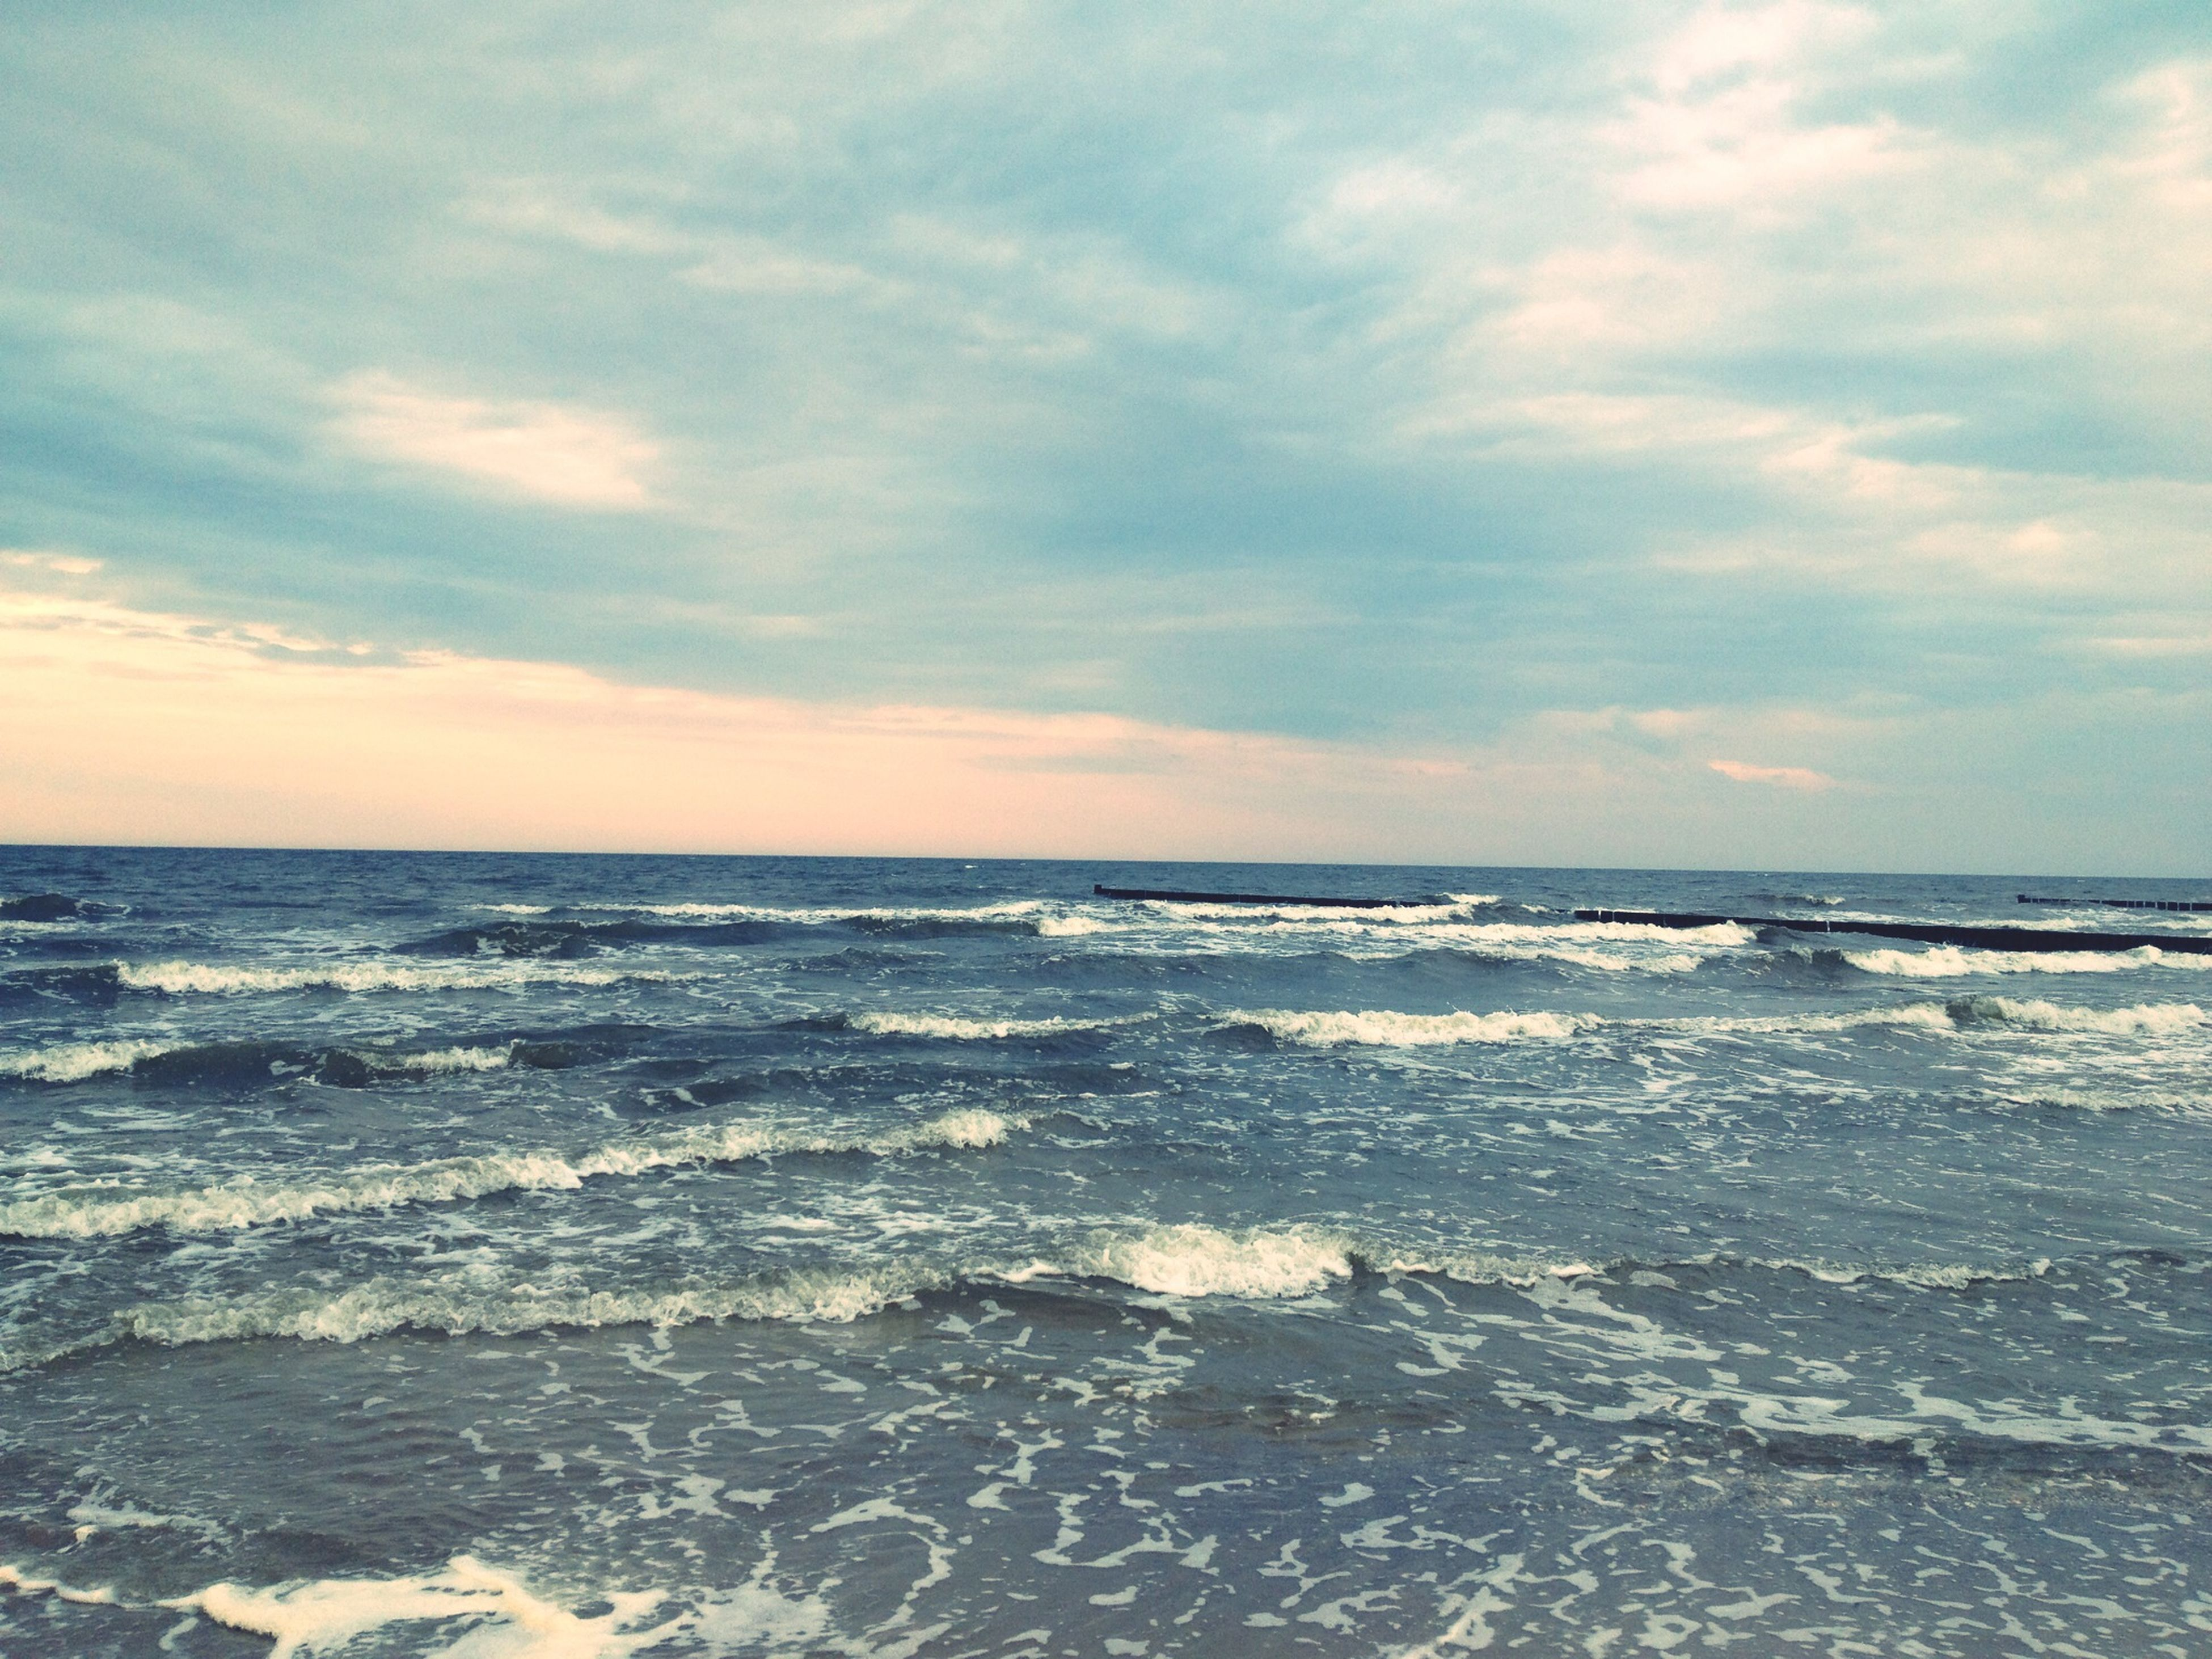 sea, water, horizon over water, sky, scenics, beauty in nature, tranquil scene, tranquility, wave, beach, cloud - sky, nature, idyllic, waterfront, shore, surf, seascape, cloudy, cloud, outdoors